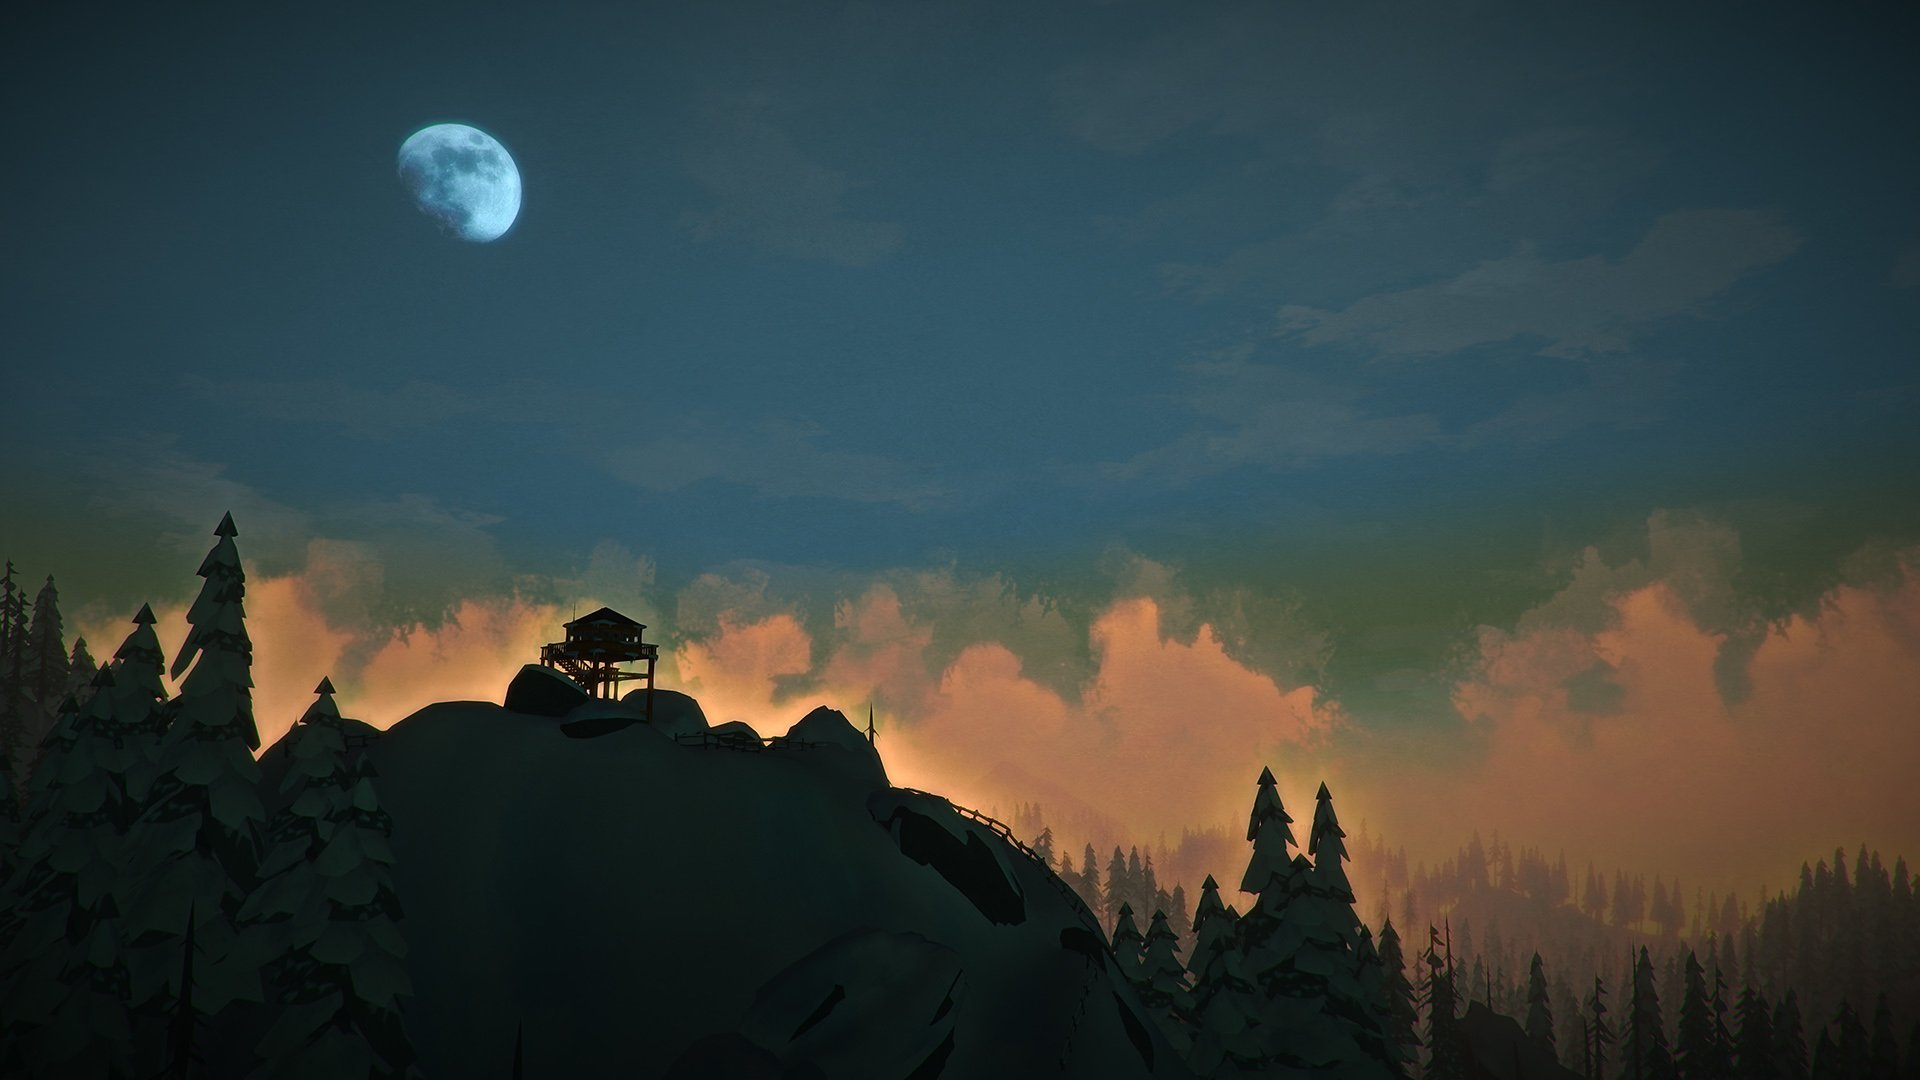 26 The Long Dark HD Wallpapers   Background Images   Wallpaper Abyss HD Wallpaper   Background Image ID 542408